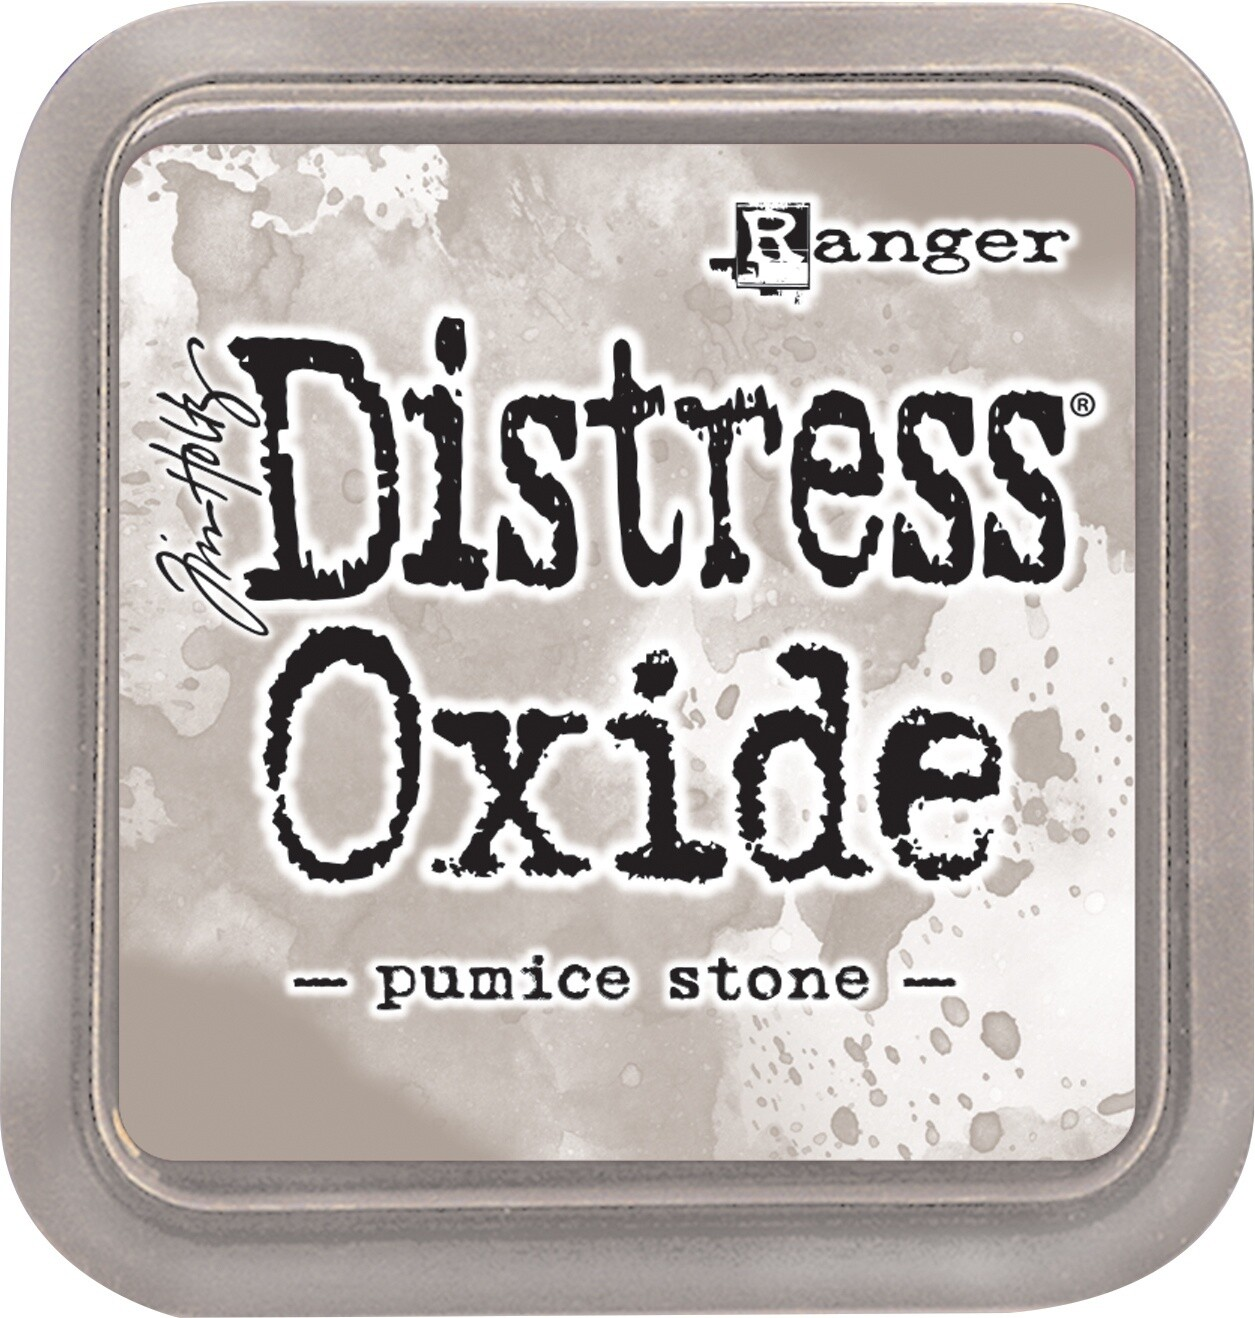 Tim Holtz Distress PUMICE STONE Oxides Ink Pad